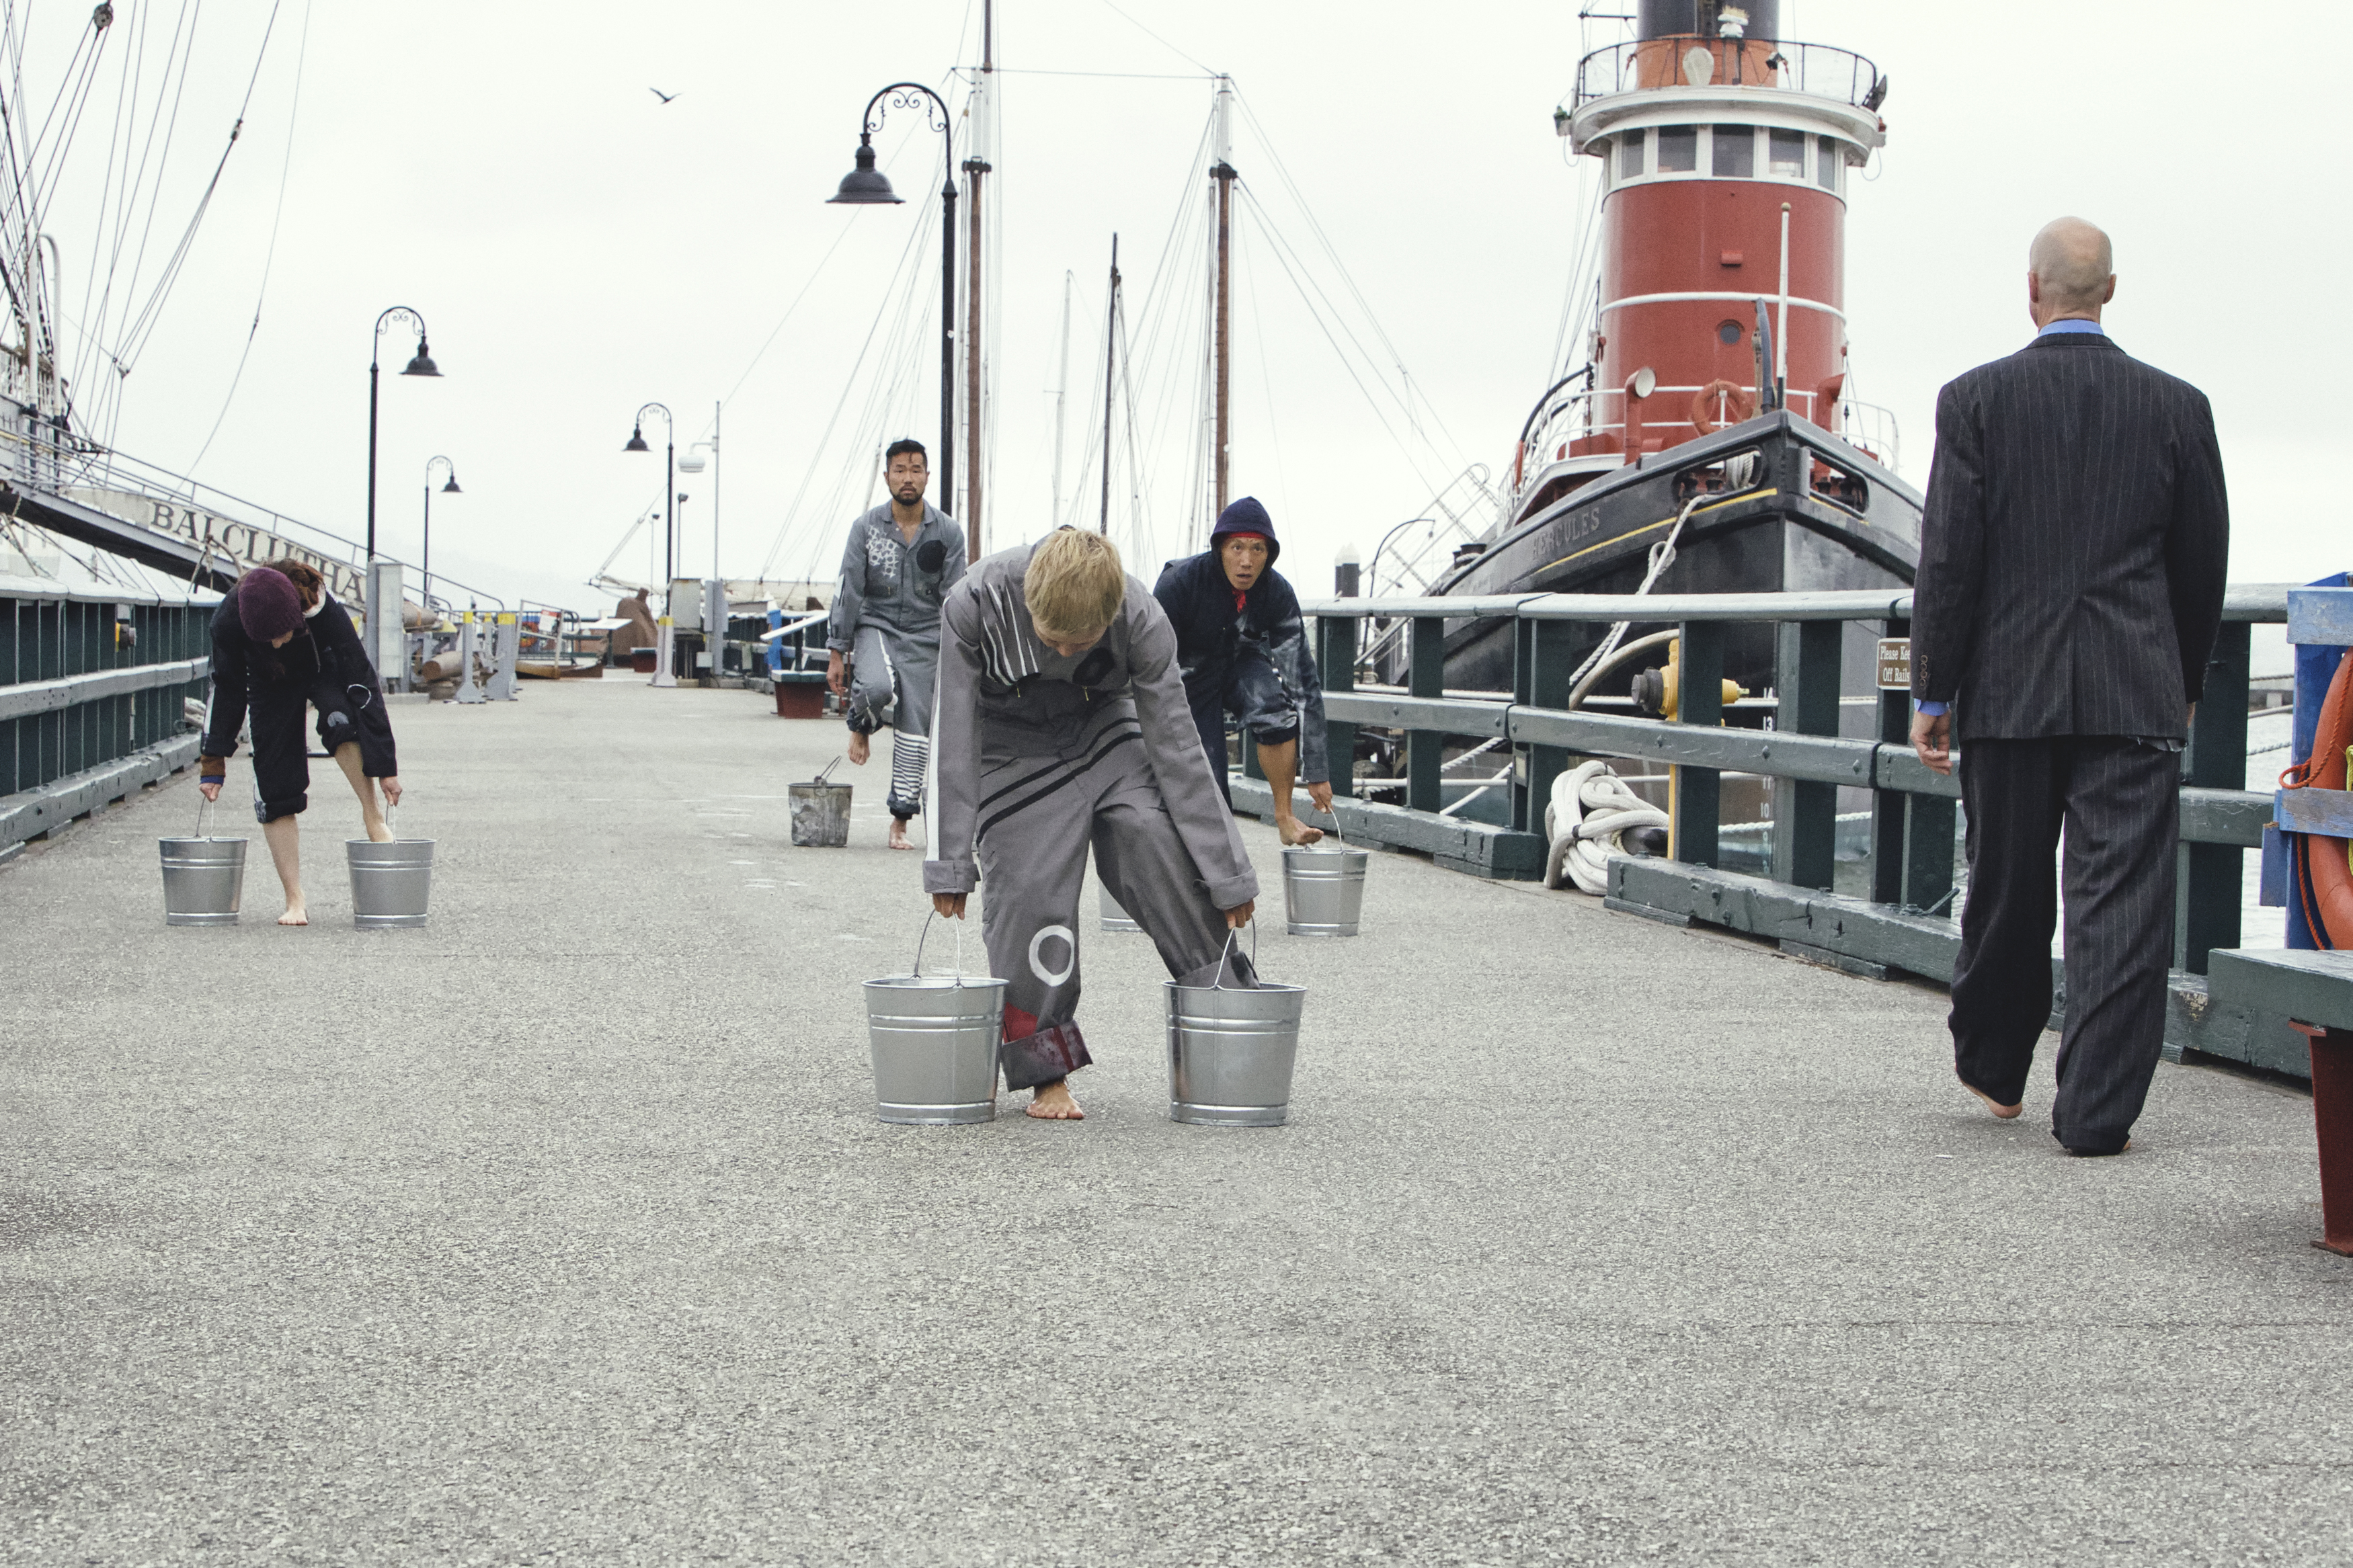 """Water Print"" dancers leaving wet footprints on the pier. Left to right: Dana Iova-Koga, Yoshi Asai, Yuko Kaseki, Sherwood Chen, Sten Rudstøm."